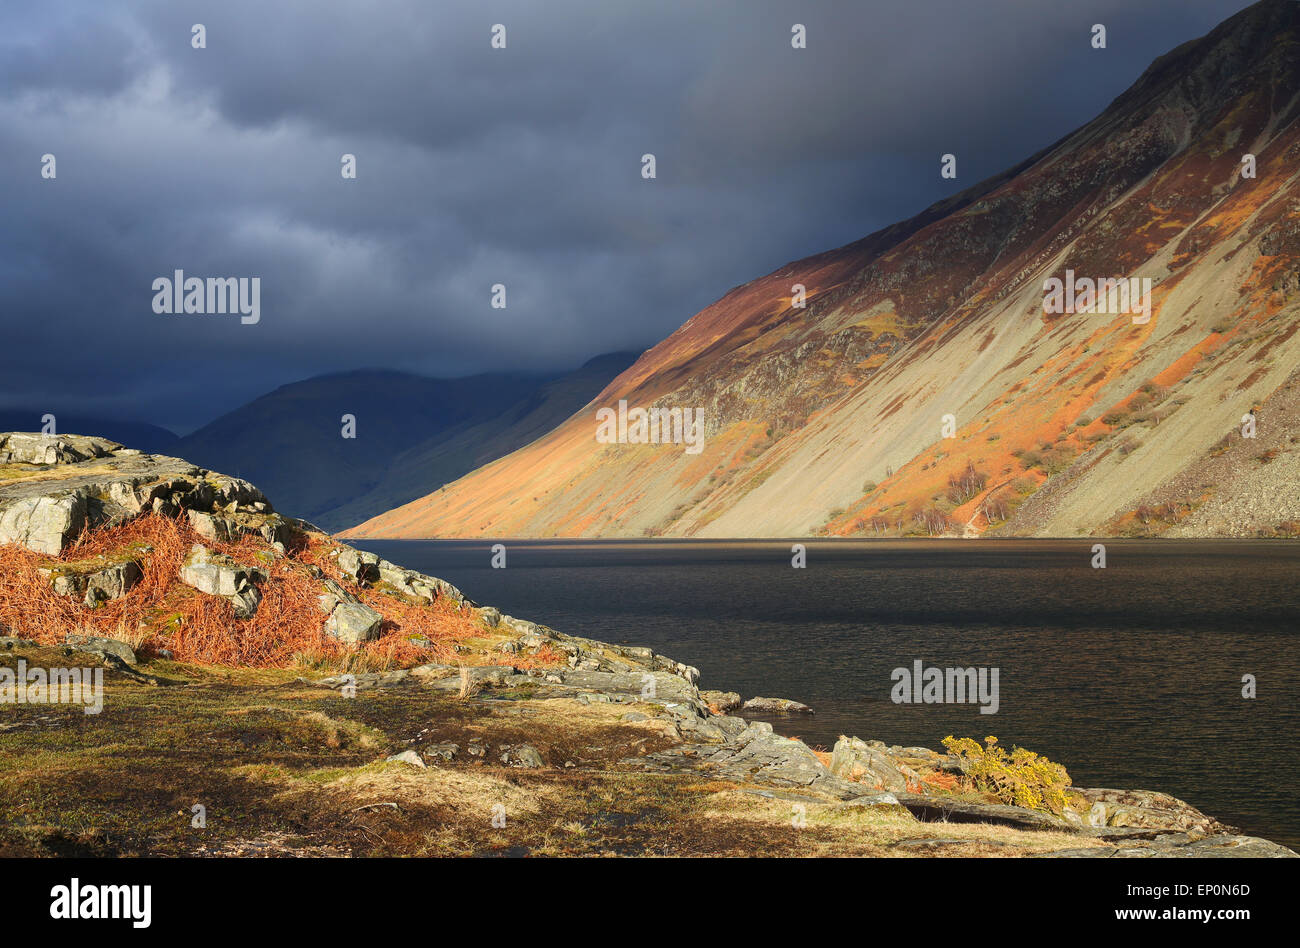 Mountain view in Wast water in Lake District, UK Stock Photo